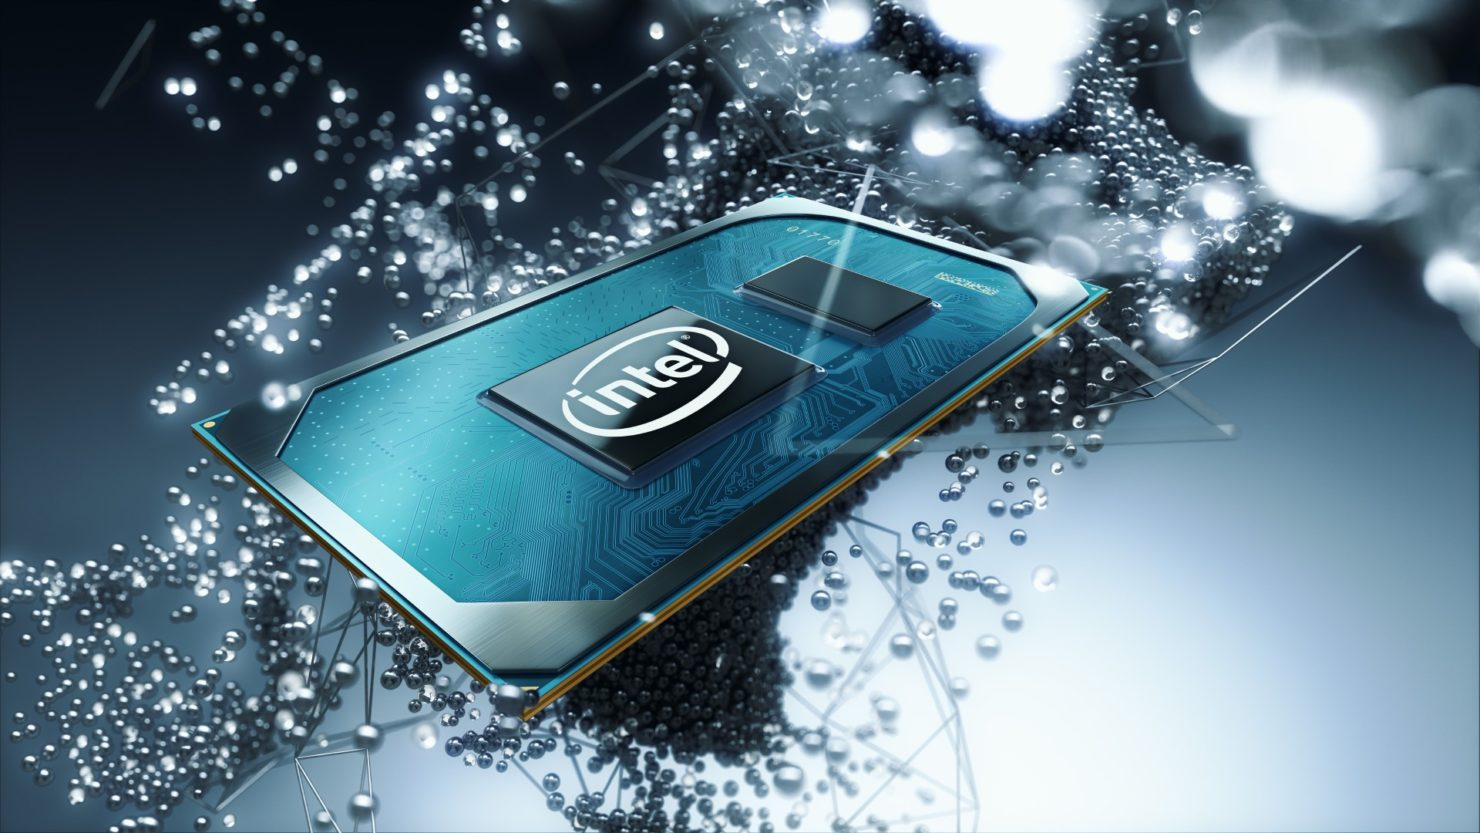 intel-tiger-lake-u-core-i7-1195g7-outperforms-desktop-cpus-in-latest-geekbench-single-core-benchmark